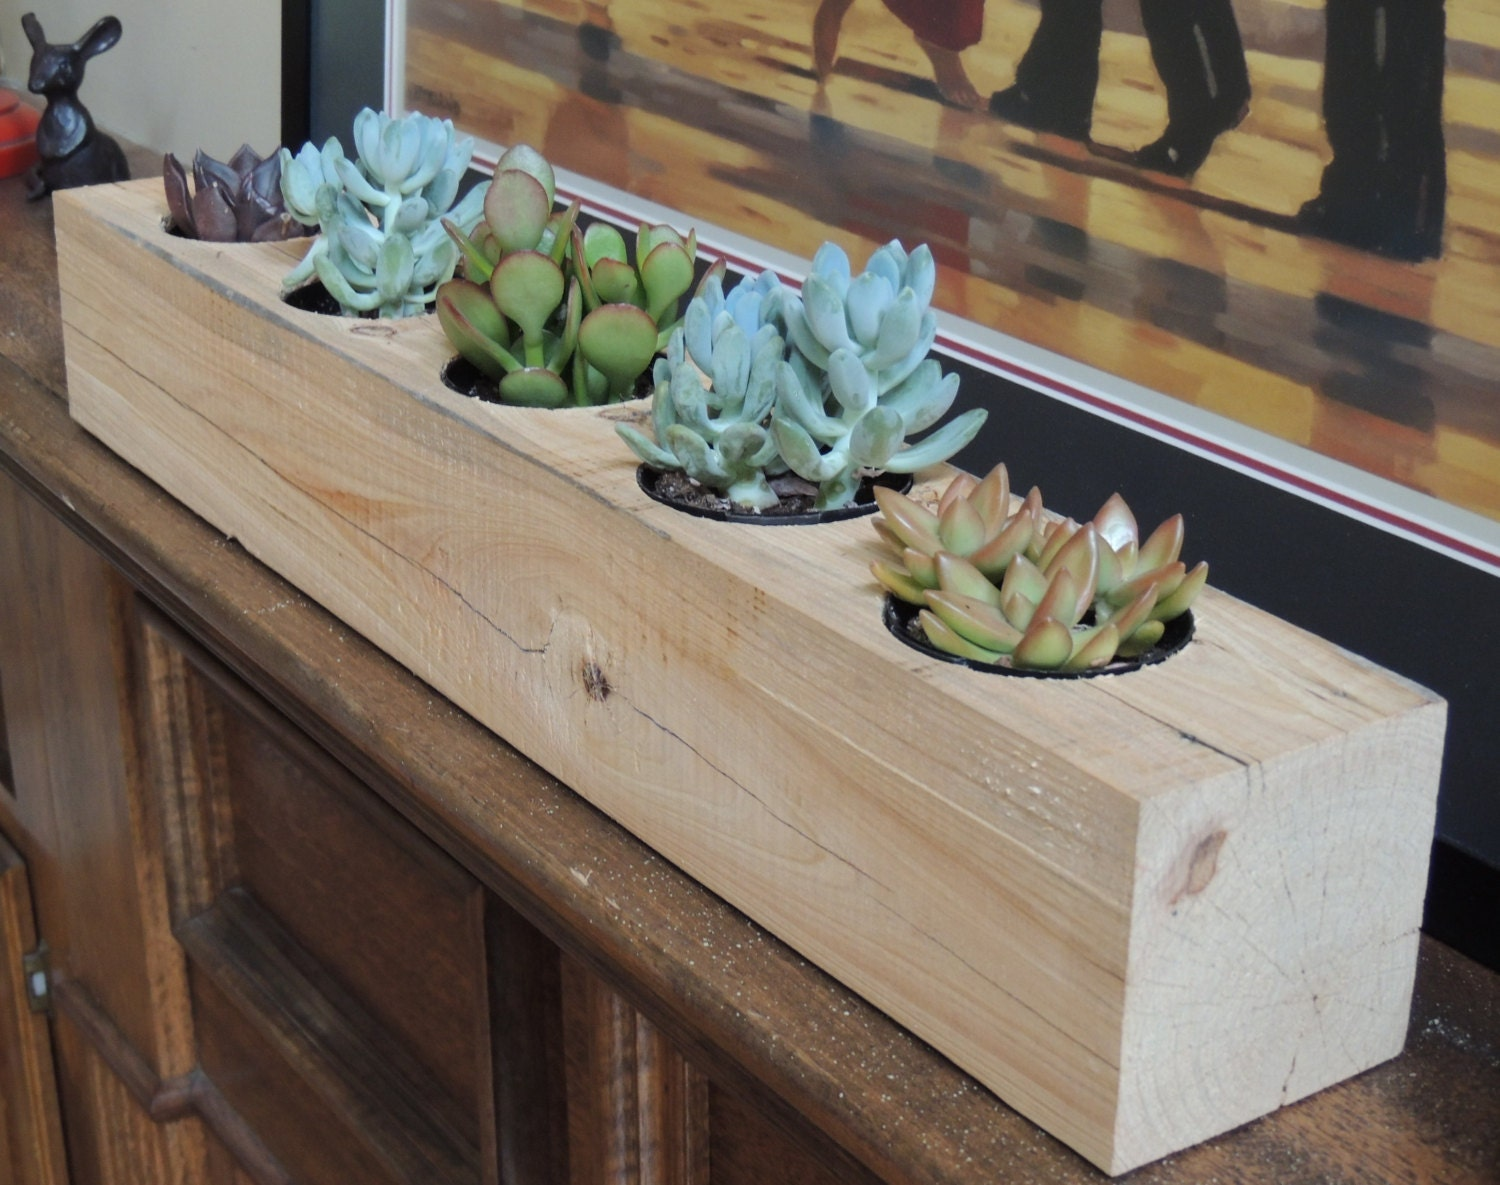 "Reclaimed Cypress Rectangular Succulent Planter / Recyled Wooden Succulent Planter (planter for 5, 2"" plants) by LeBrun Designs - LeBrunDesignsInc"